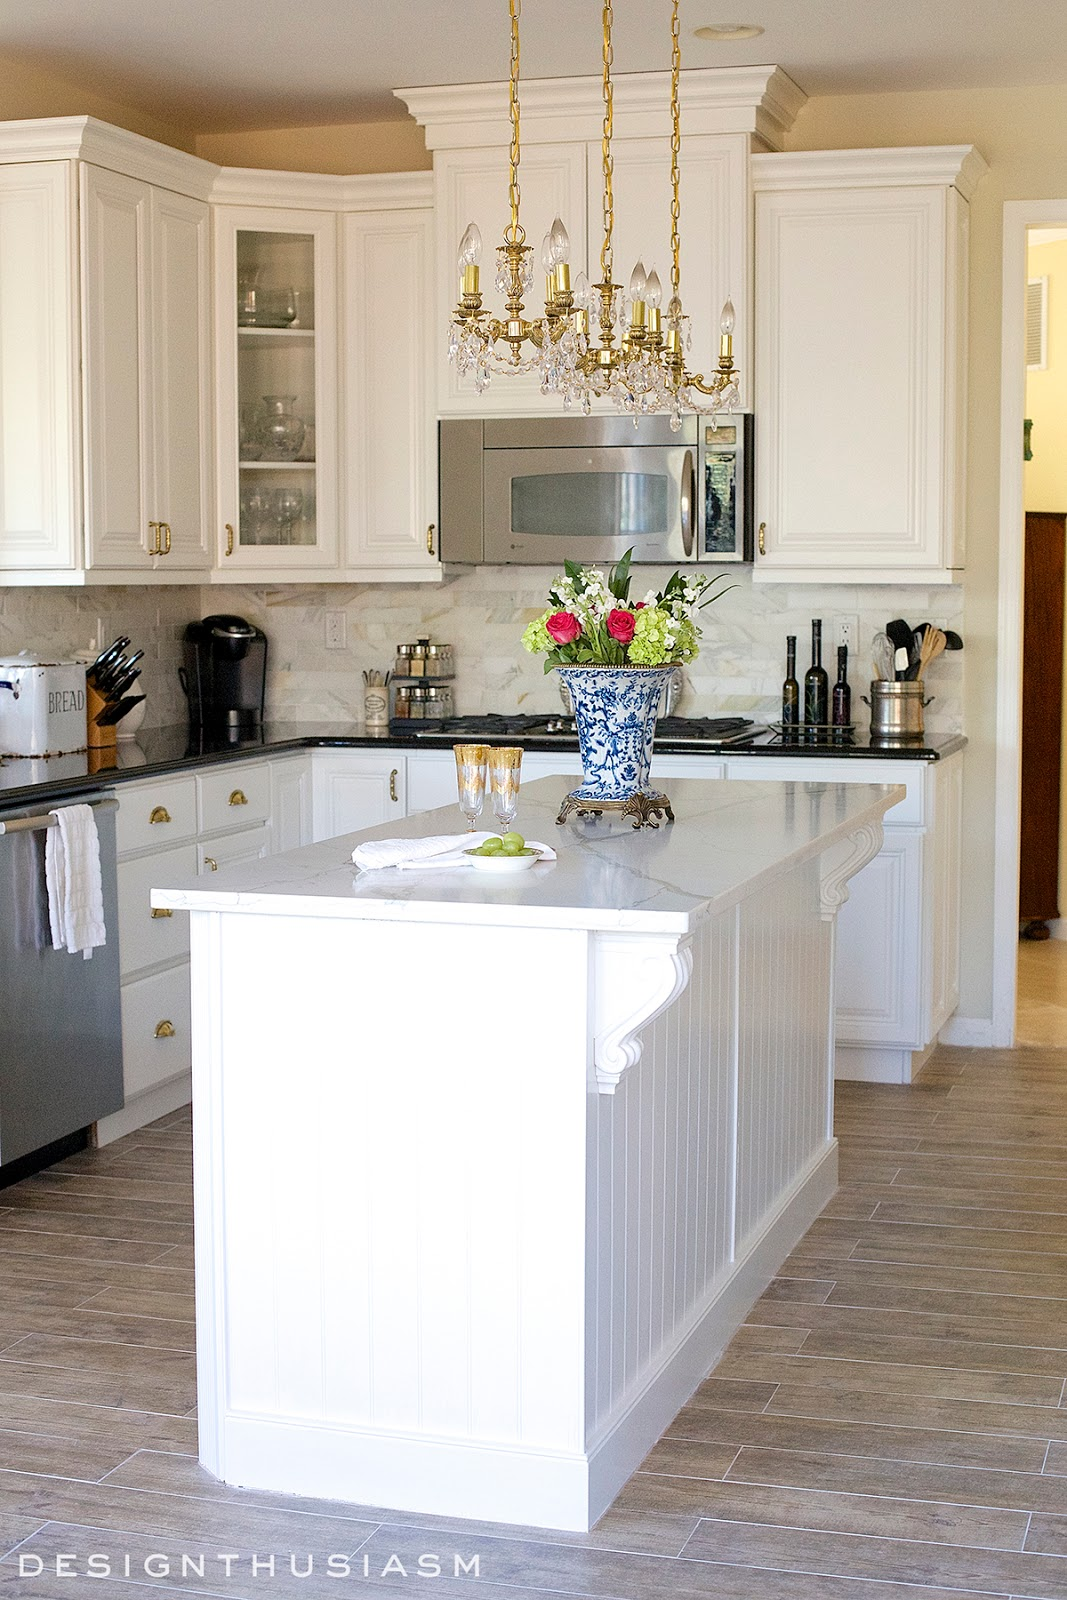 Comparing Todays Kitchen Countertop Materials and What I Selected – Kitchen Countertop Material Comparison